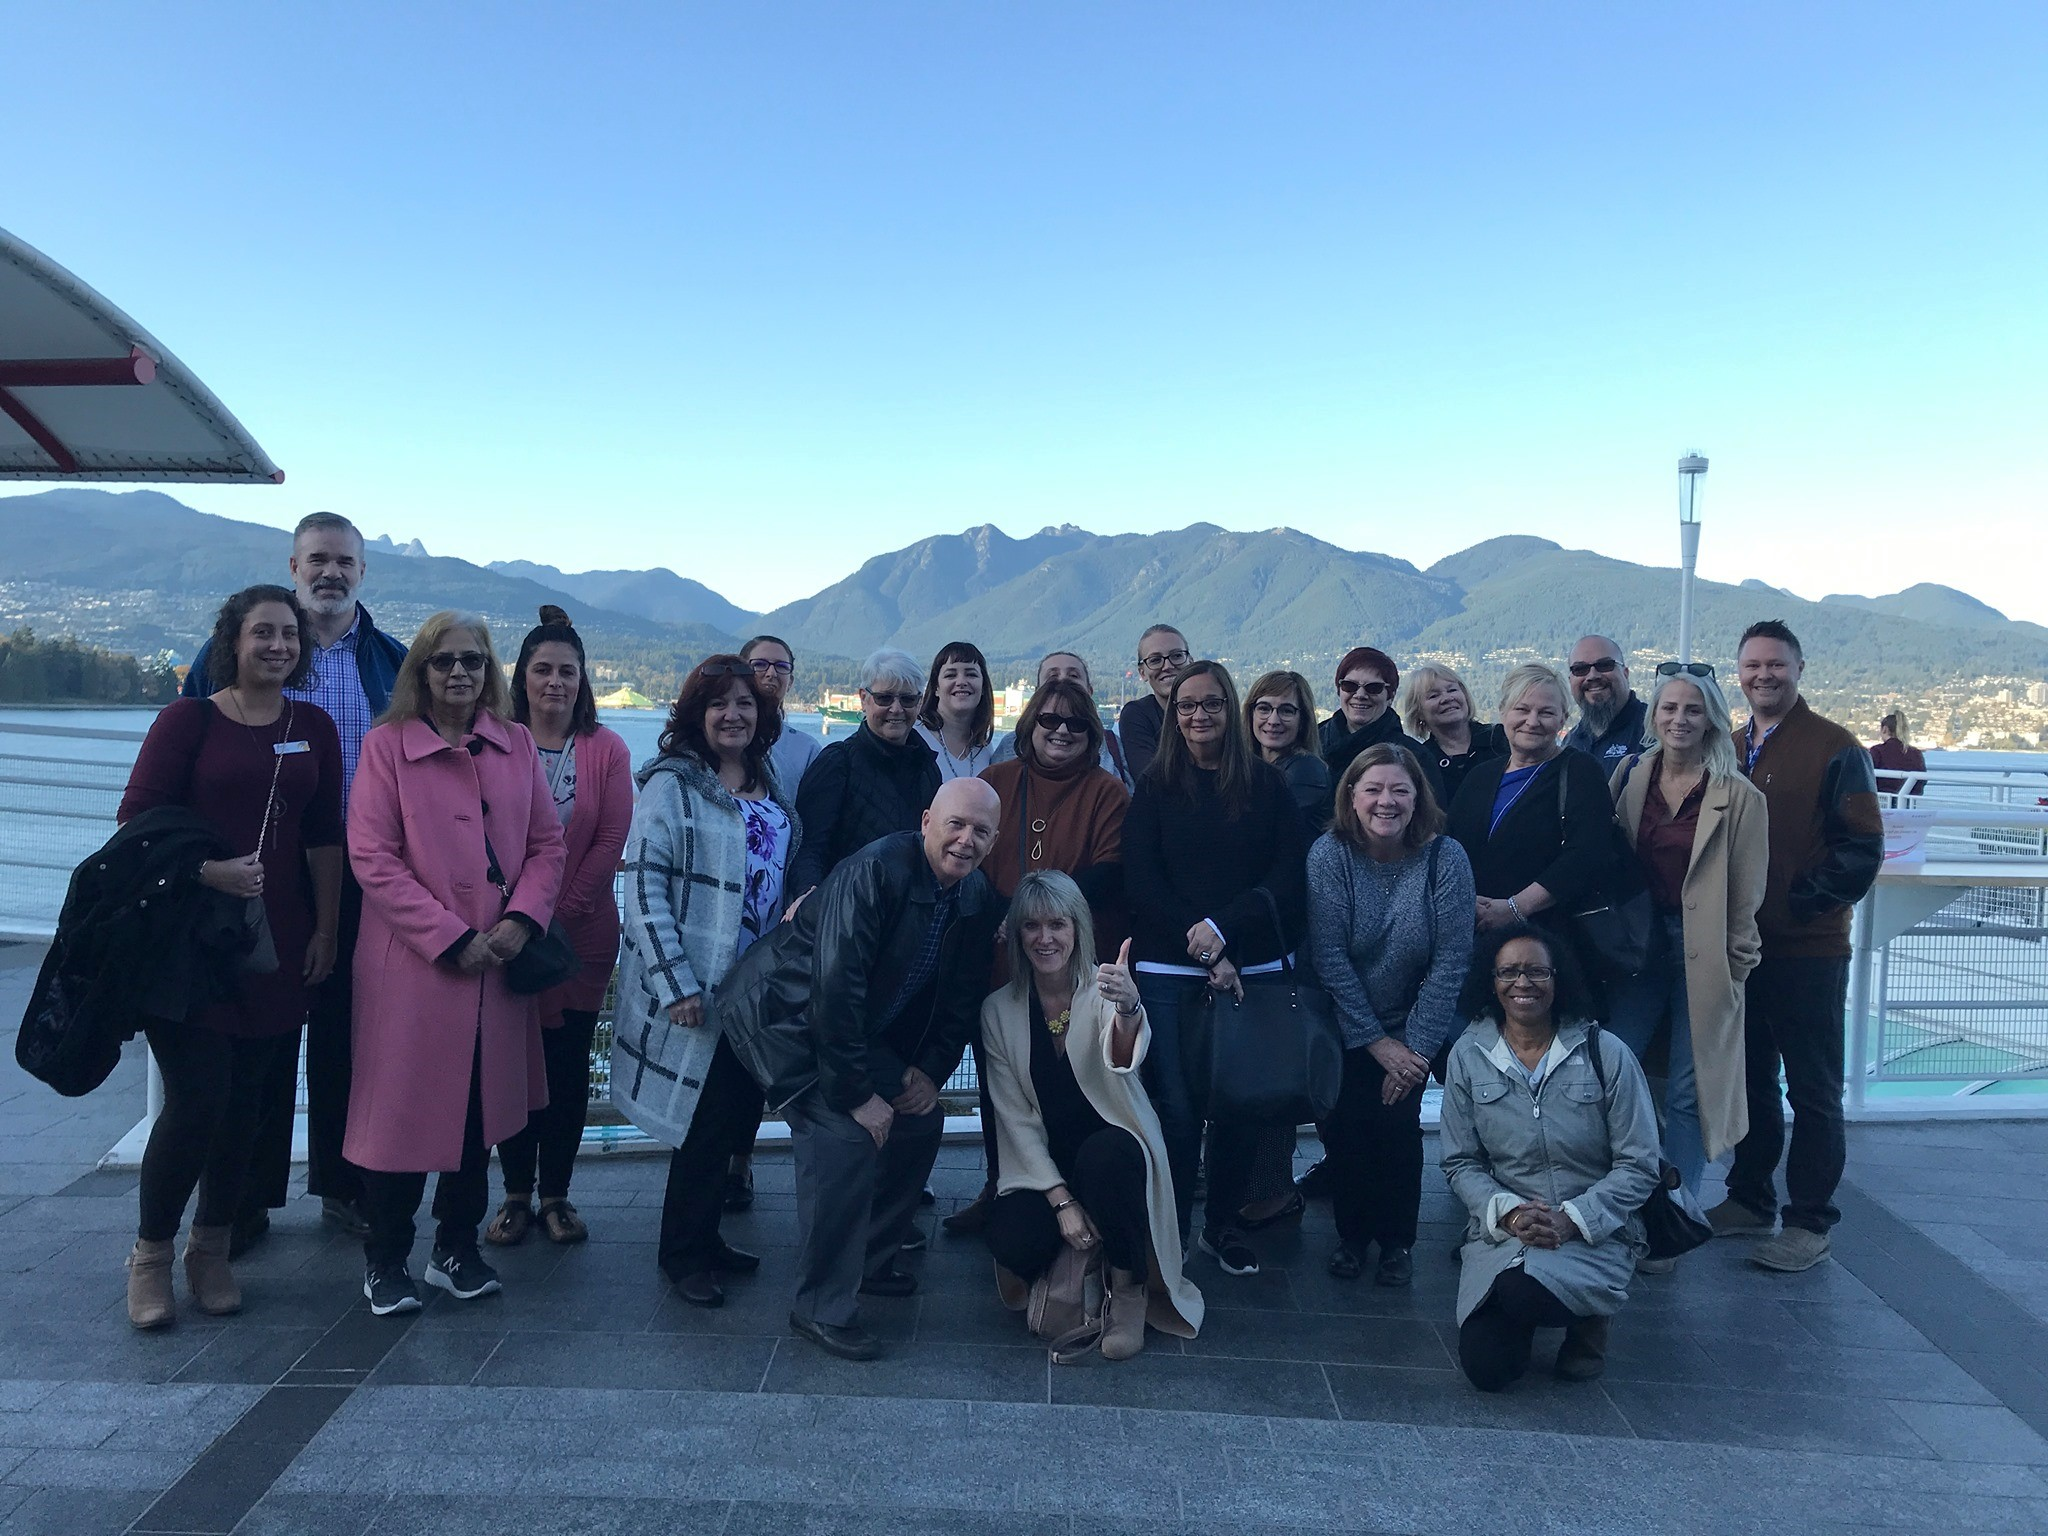 As part of the conference, Travel Masters' agents agents also had an exclusive mini Globus tour of Vancouver.